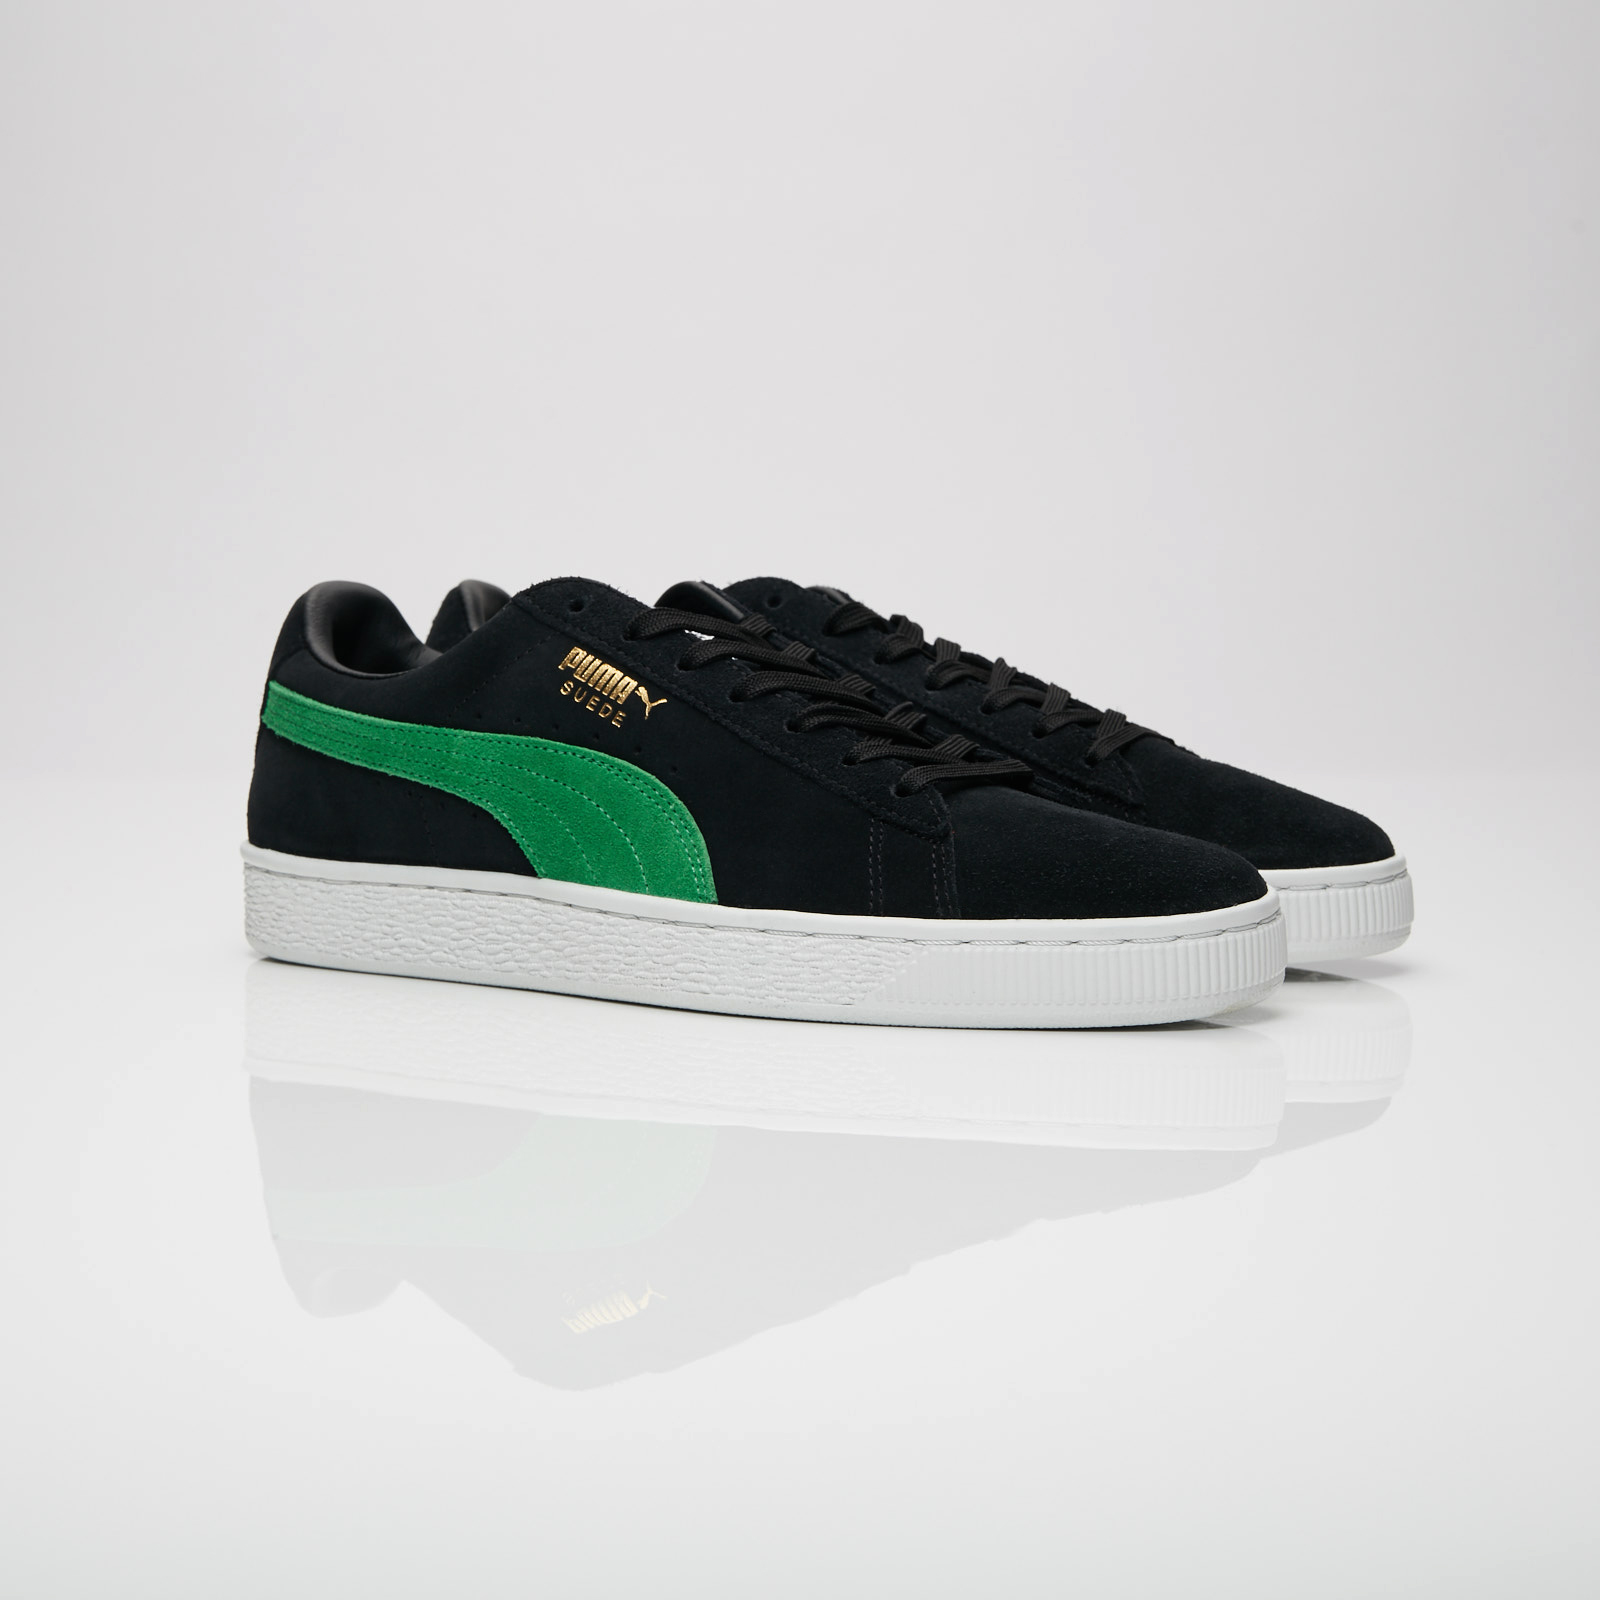 29be25019019 Puma Suede Classic x Xlarge - 366307-01 - Sneakersnstuff